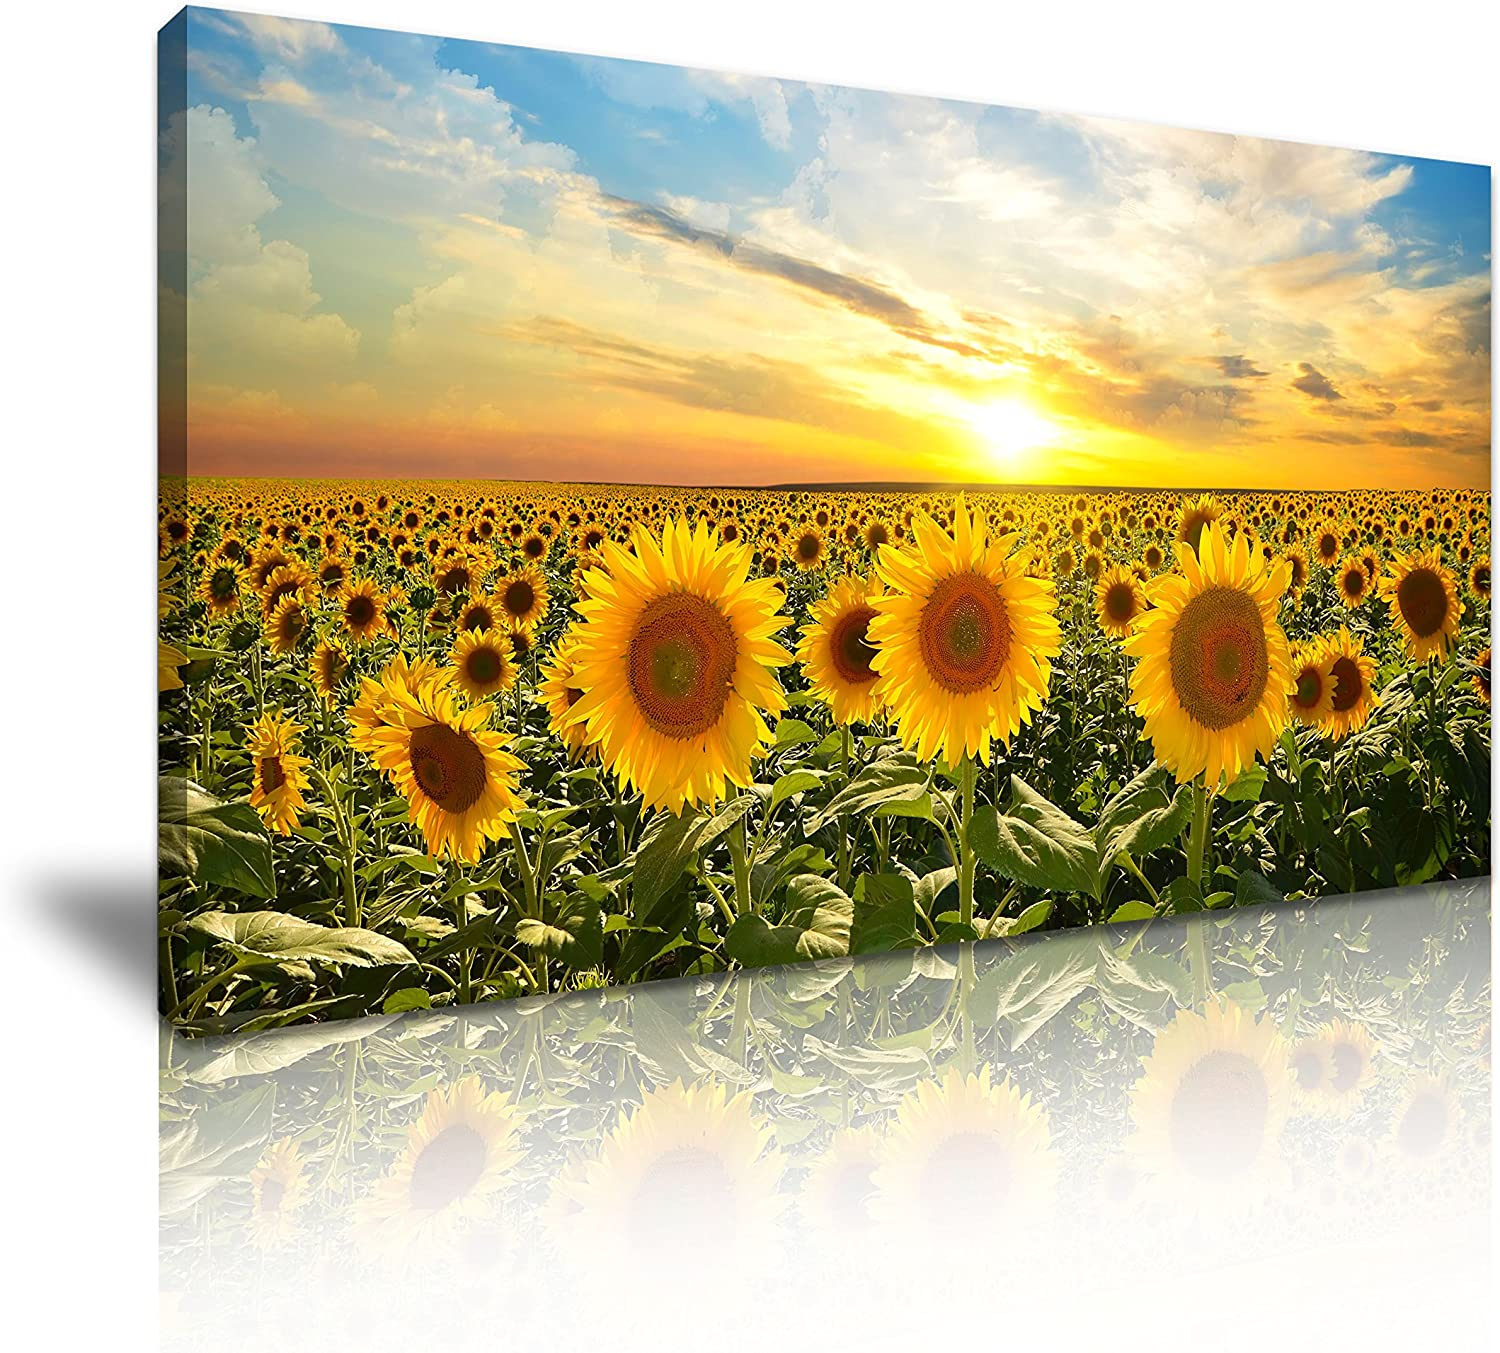 Sunflower Canvas Wall Art Picture Print 60x30cm Amazon Co Uk Kitchen Home